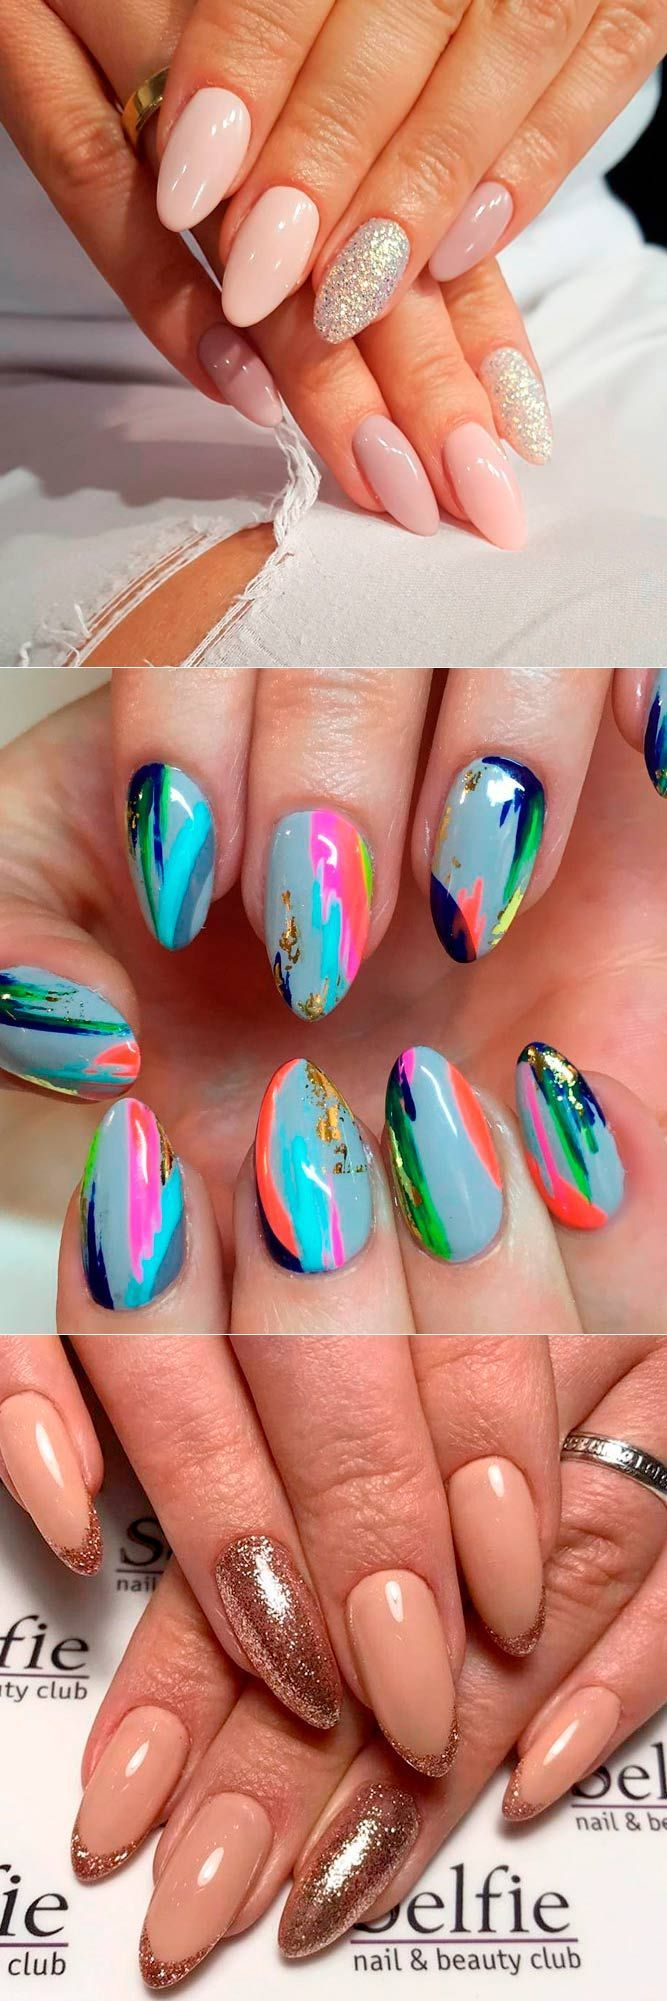 best 25+ luxury nails ideas on pinterest | nail inspo, nails and